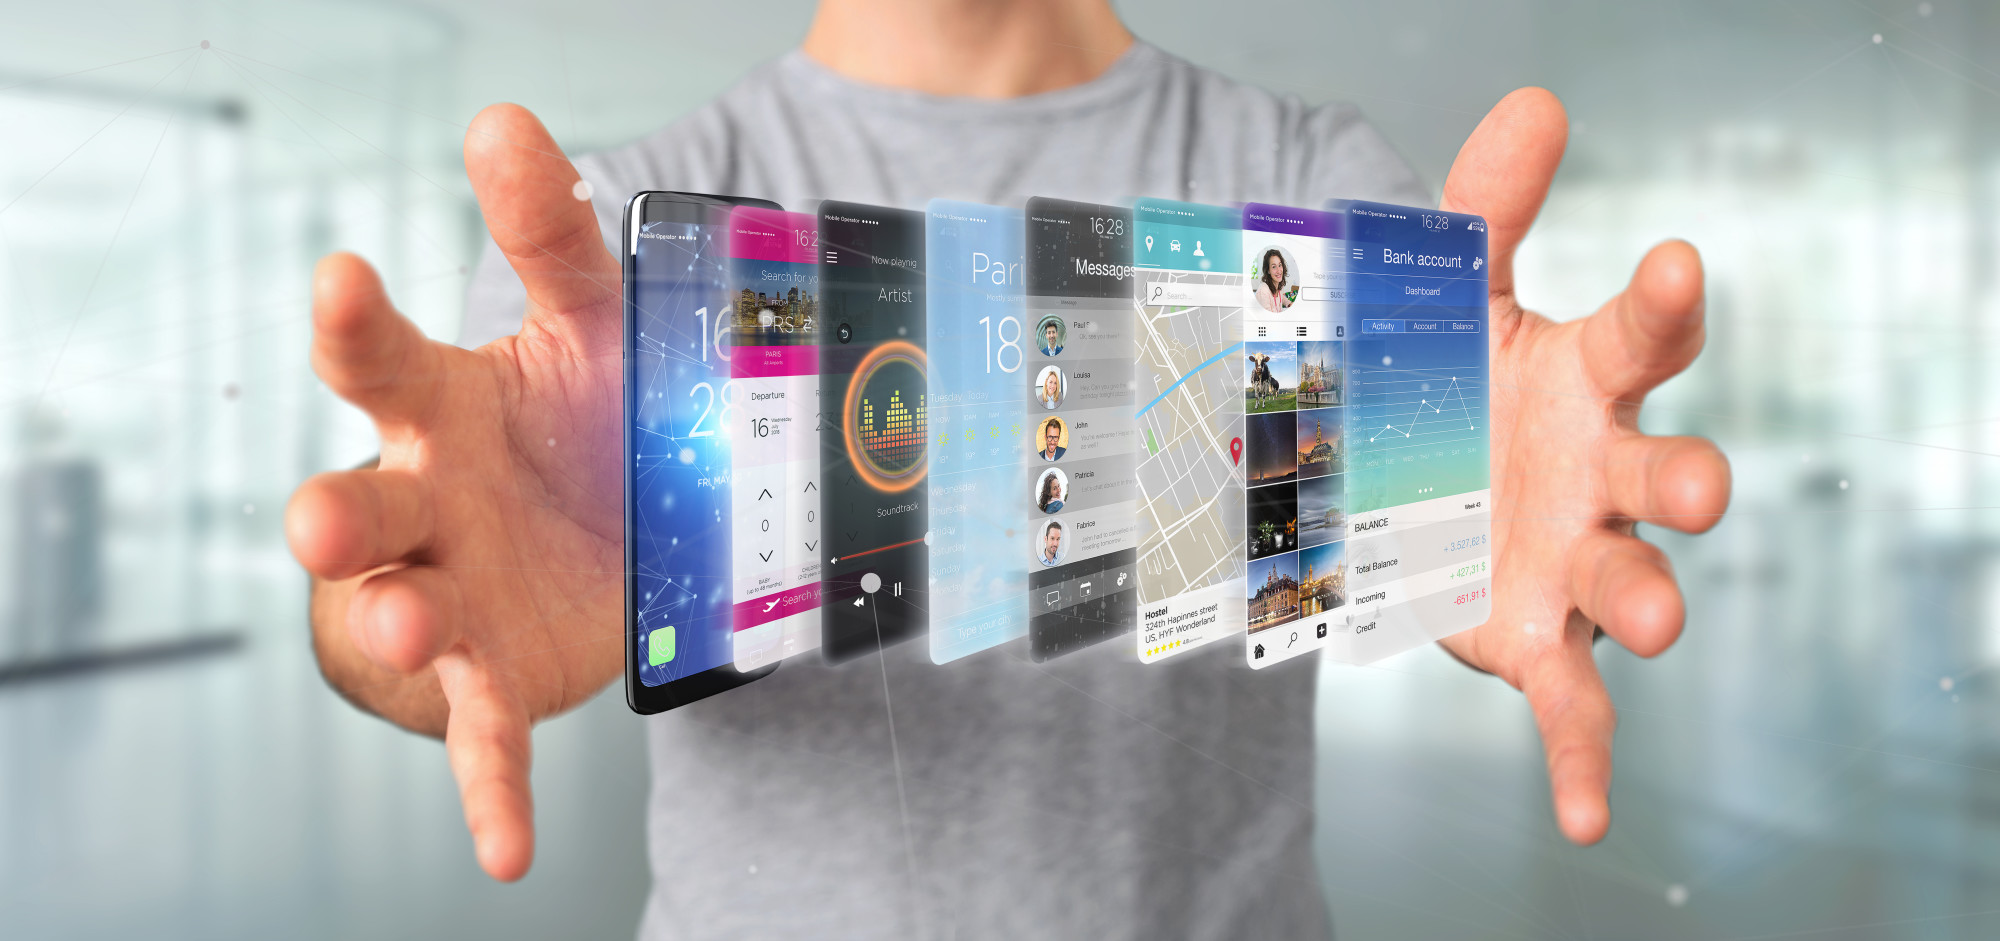 Consider Developing a Mobile Applications for Your Businesses